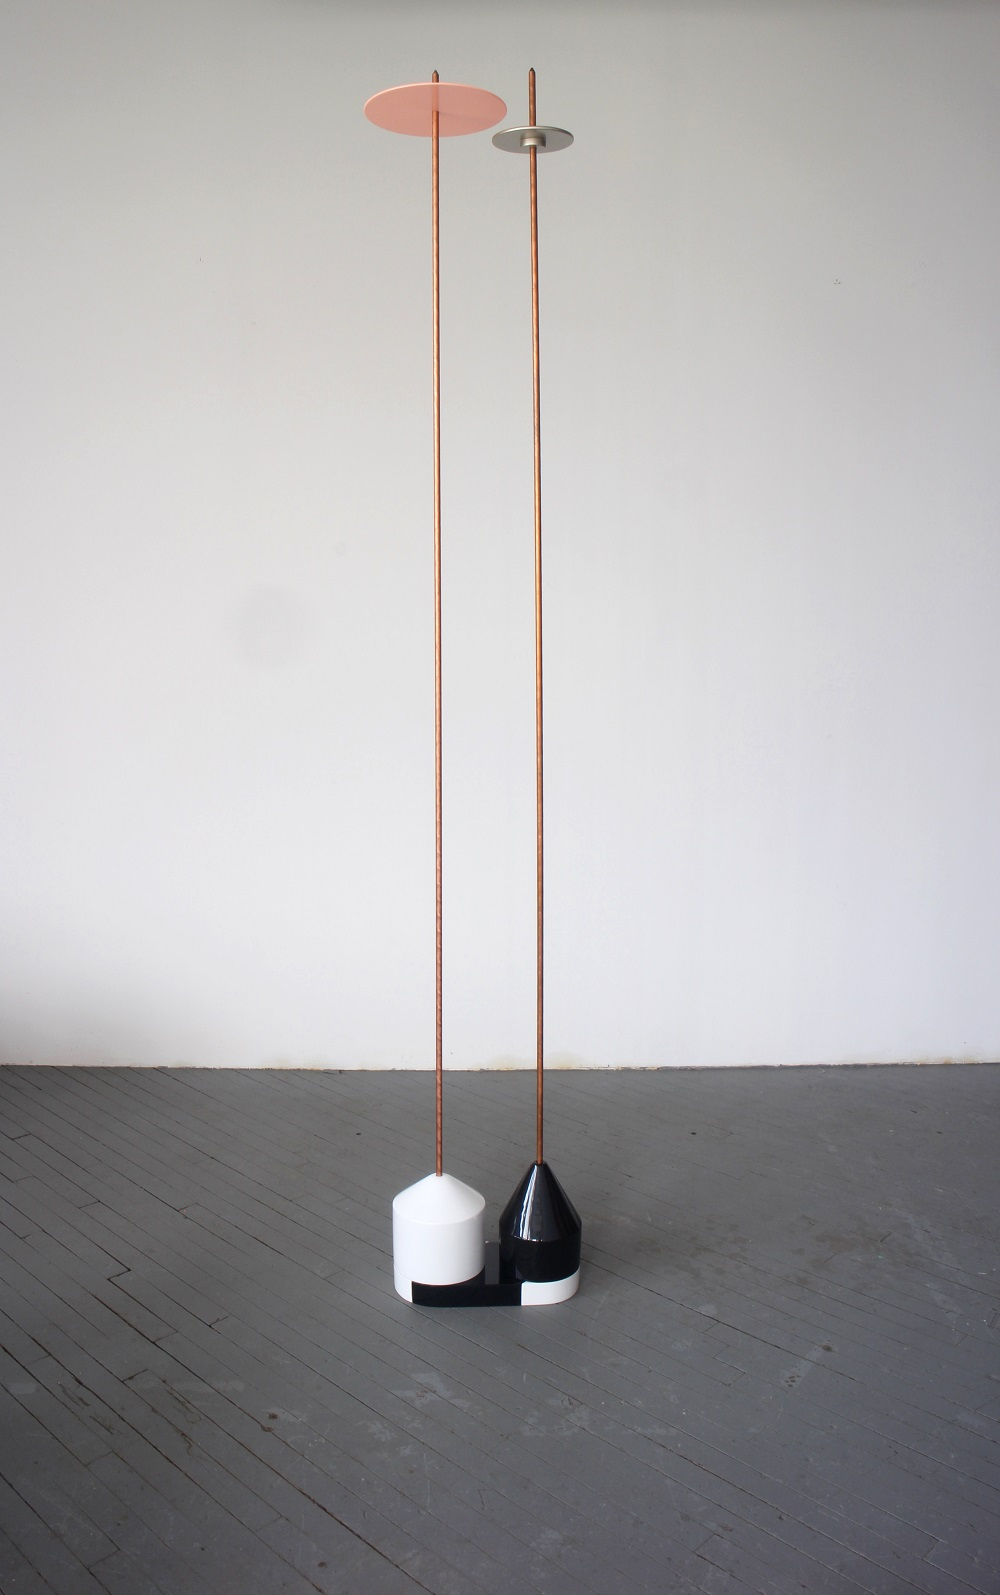 Formula3, 2016, Copper coated steel rod and painted MDF, 244x40x26 cm